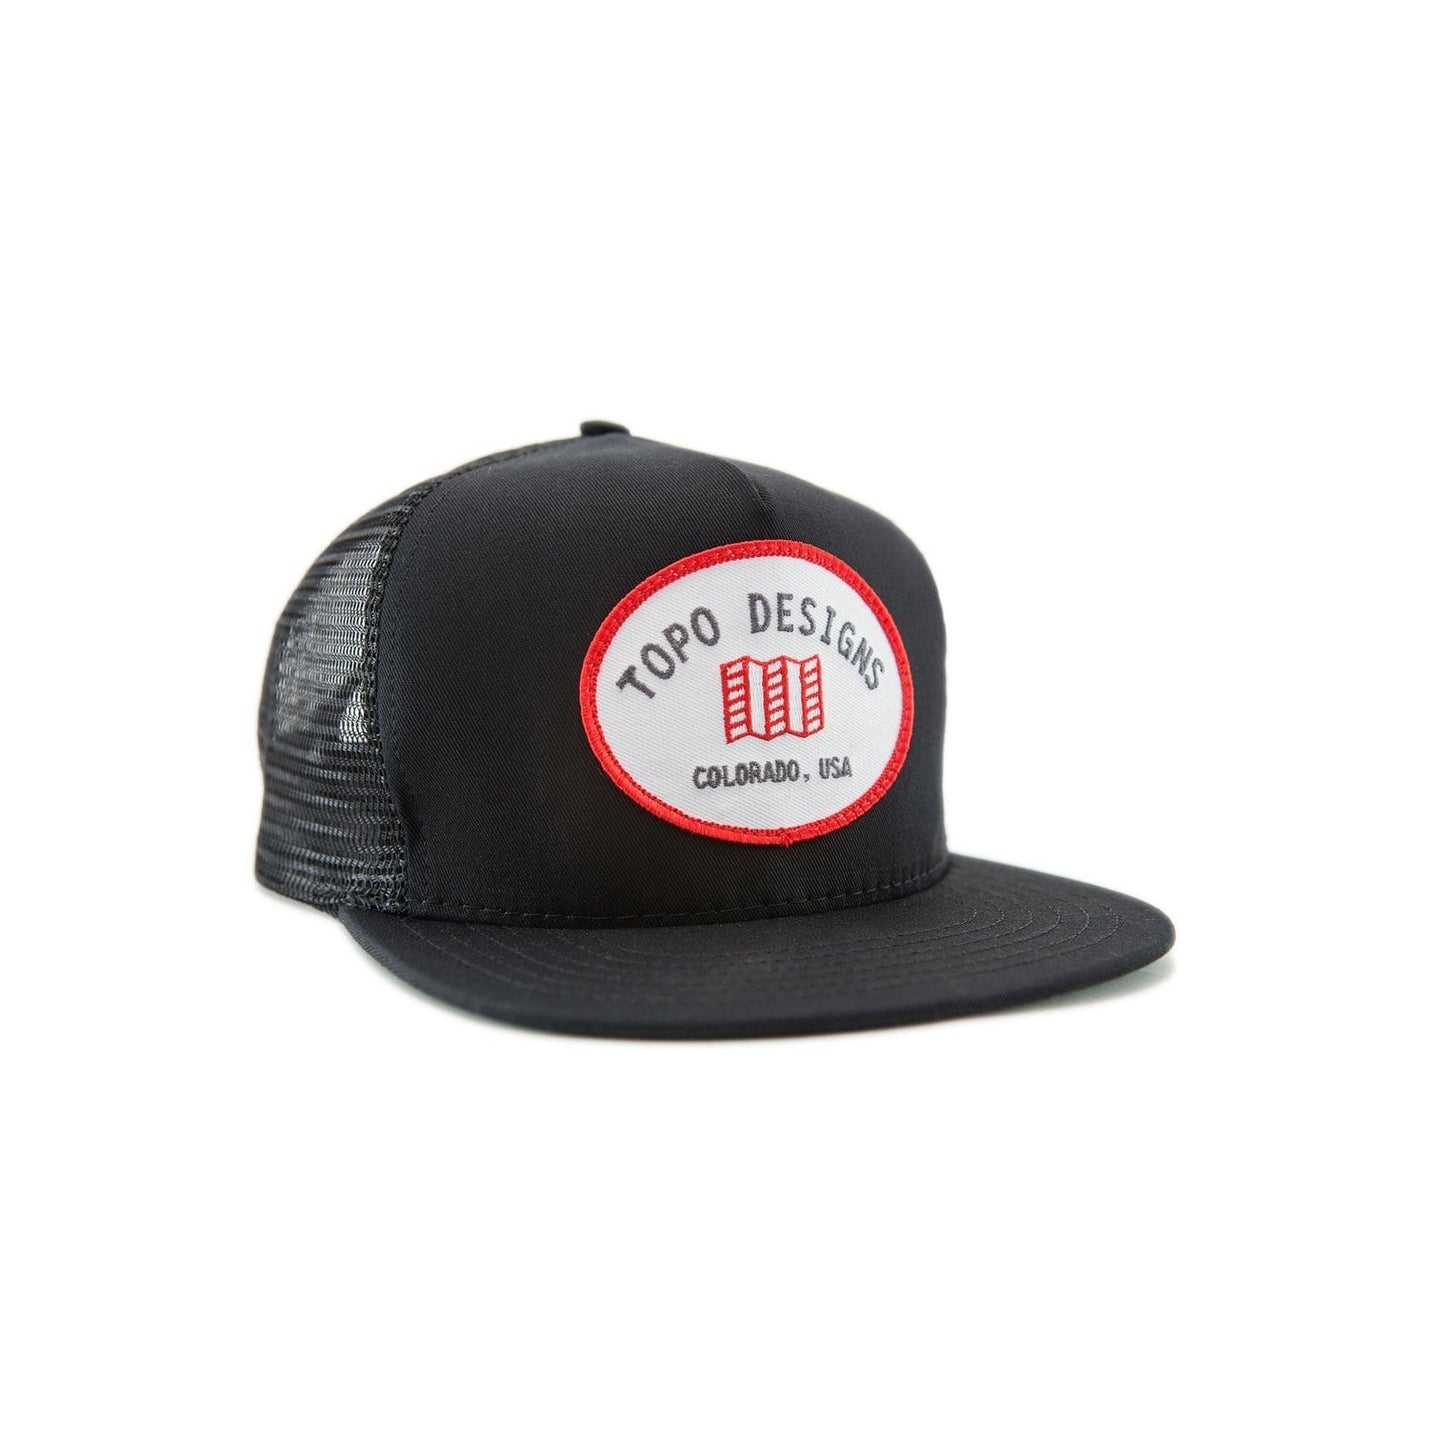 Topo Designs Snapback Hat / Neighborhood Goods